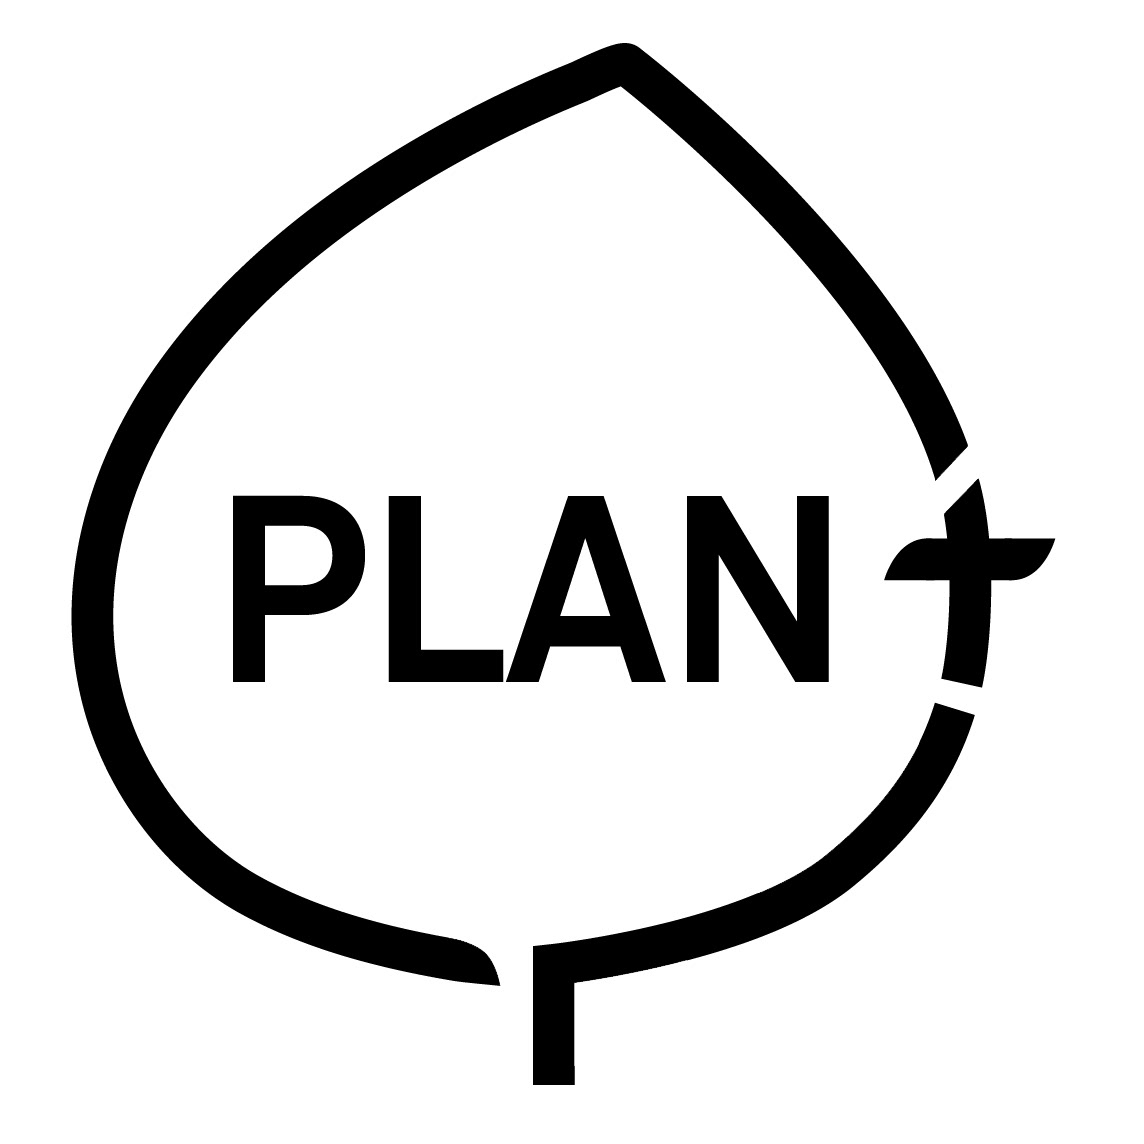 Planning and Landscape Architecture Network